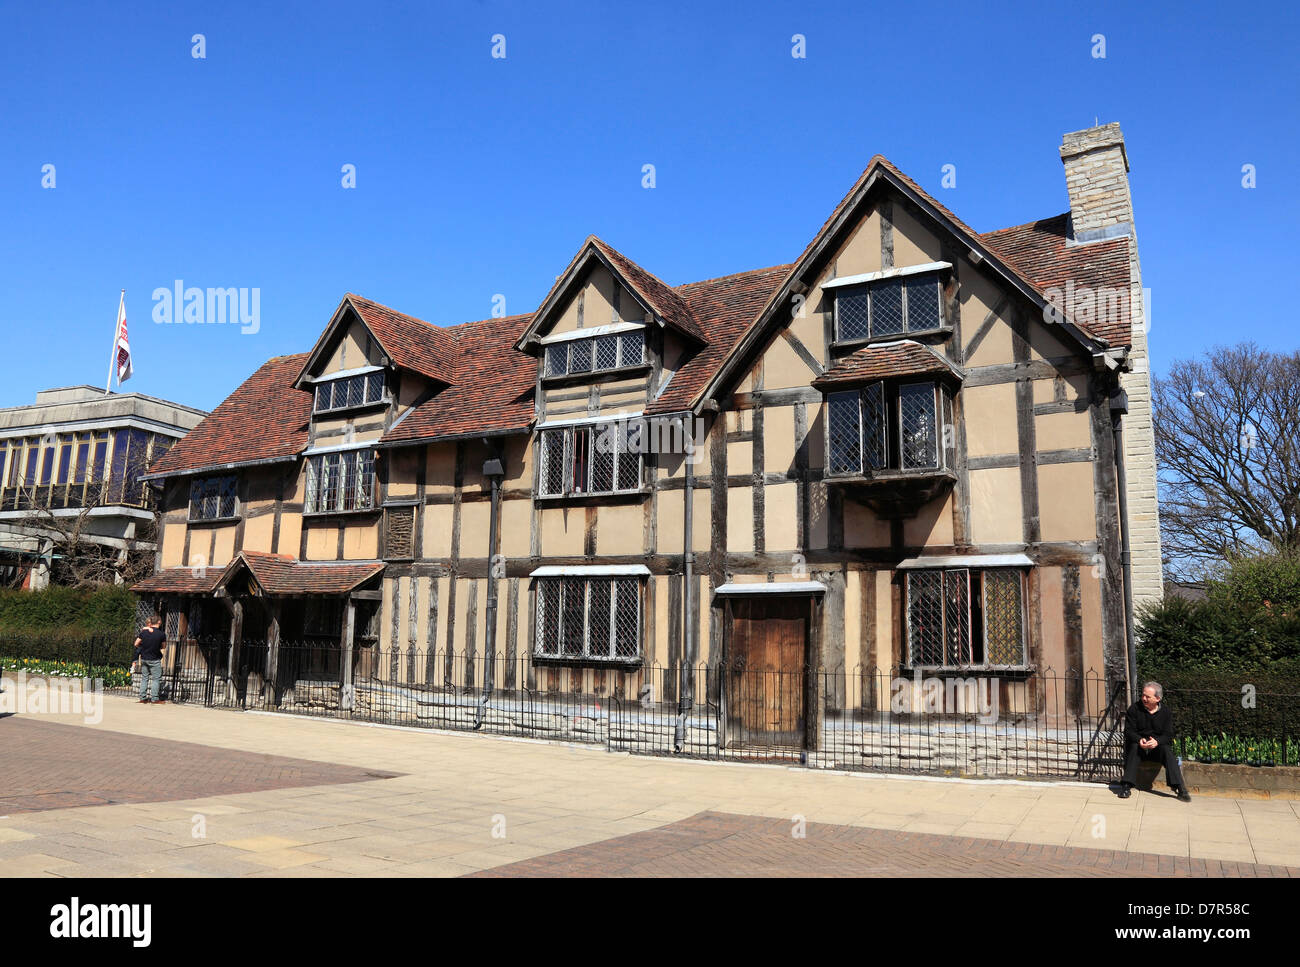 Shakespeare's Birthplace at Stratford on Avon England - Stock Image